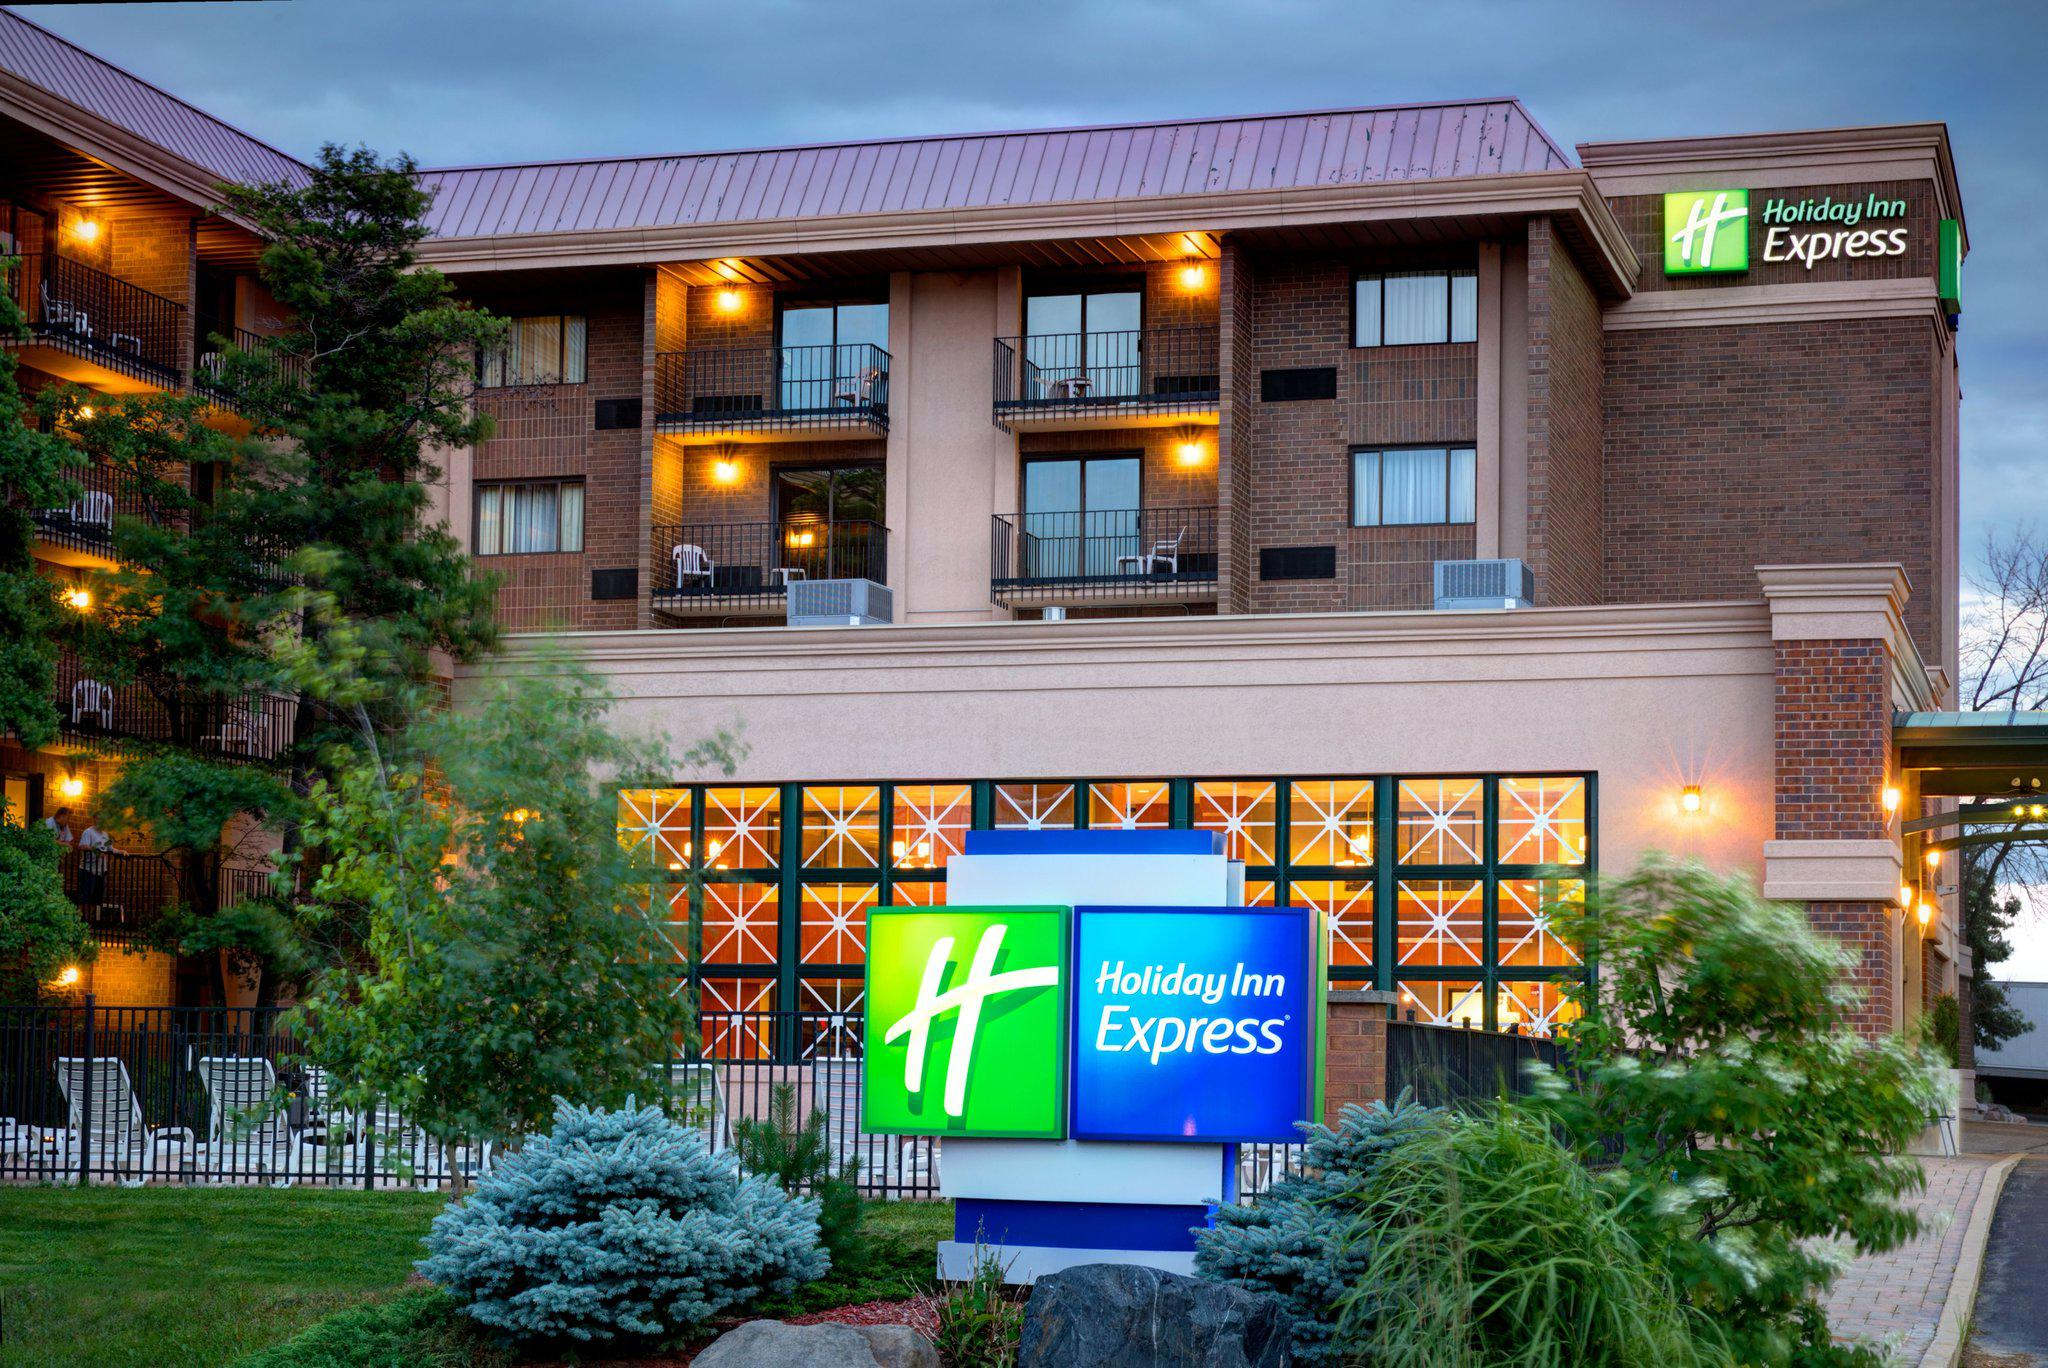 Holiday Inn Express Rolling Mdws-Schaumburg Area in Rolling Meadows, IL, photo #6